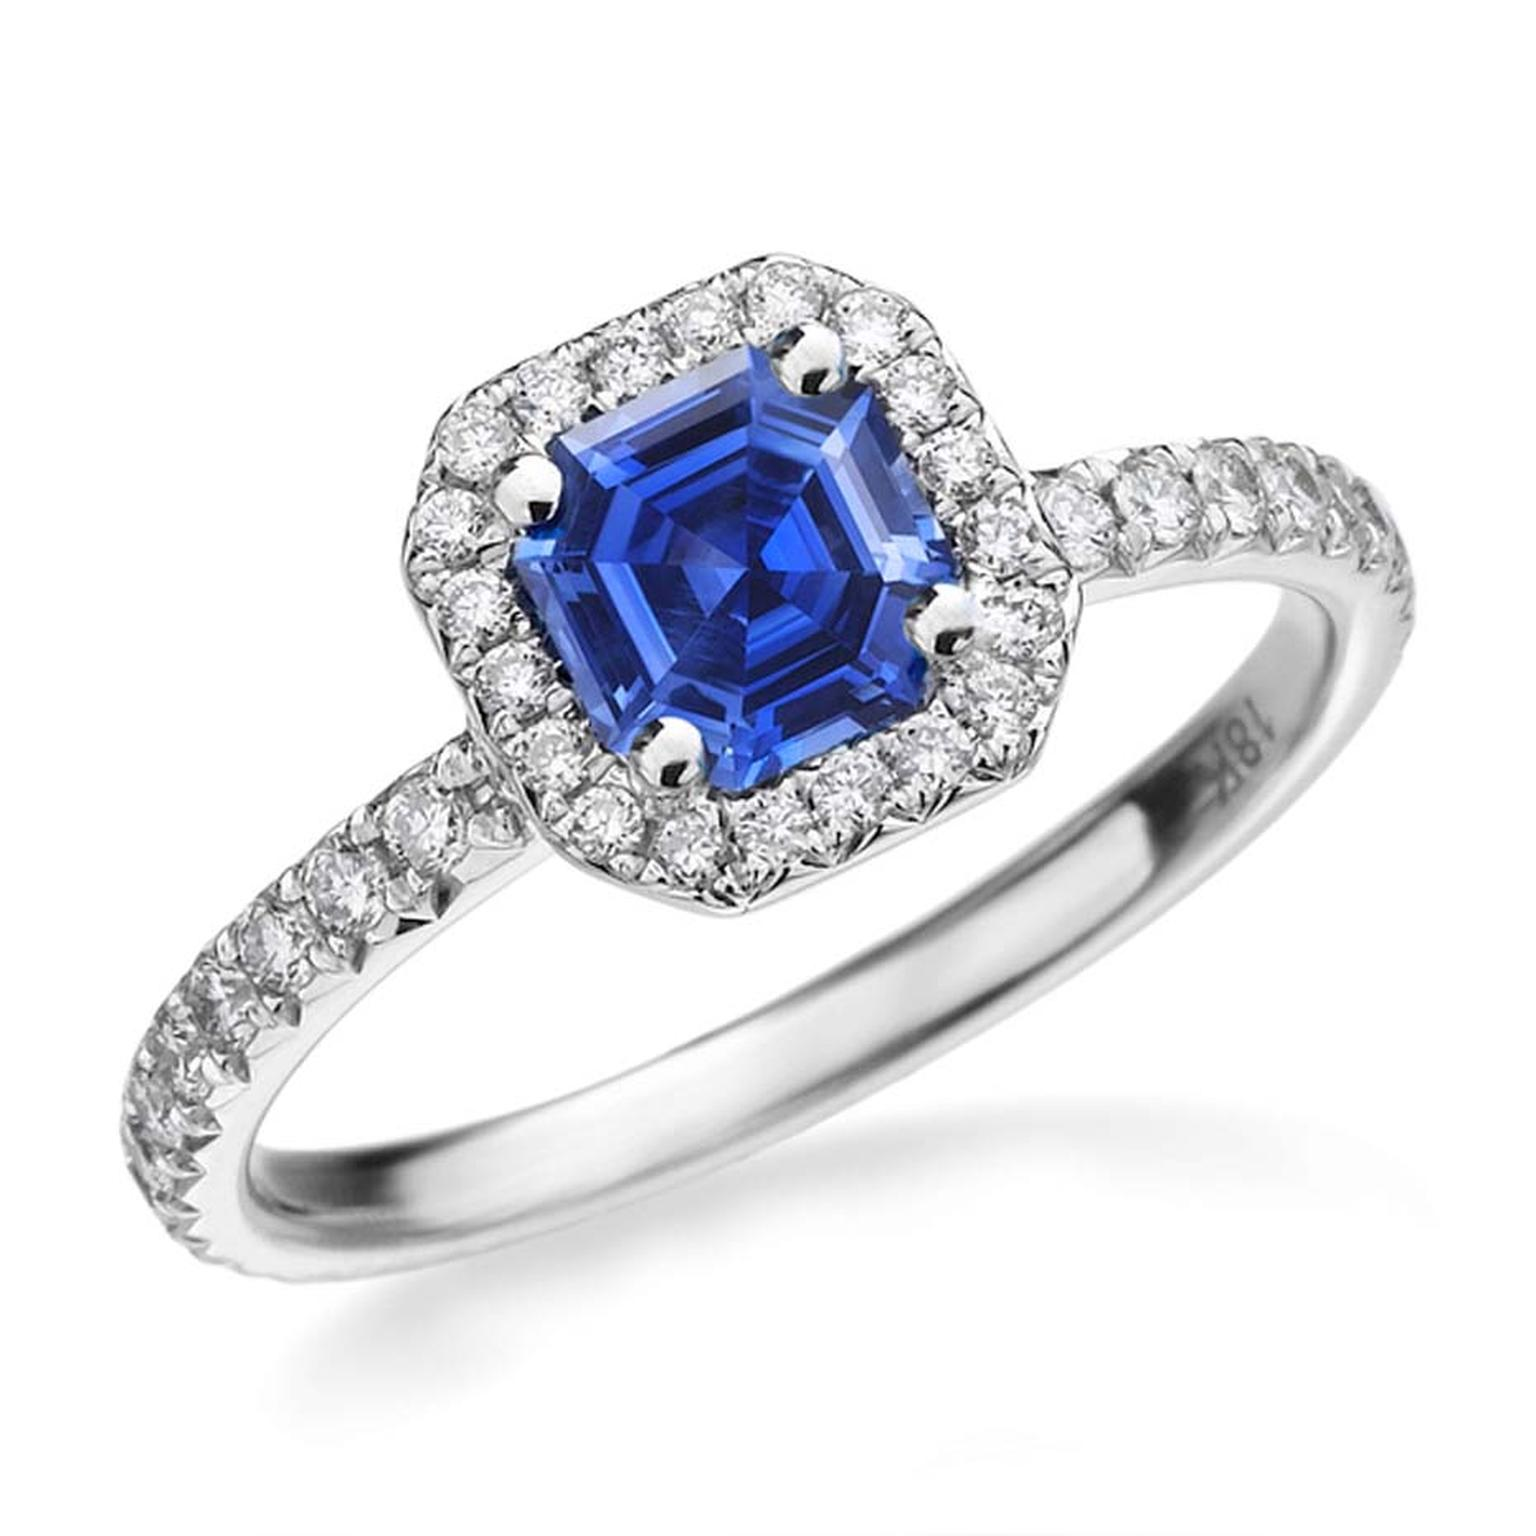 The Royal Asscher cut is usually associated with diamonds, but the multi-faceted cut highlights the blue shimmer in its stunning Spellbound sapphire engagement ring.